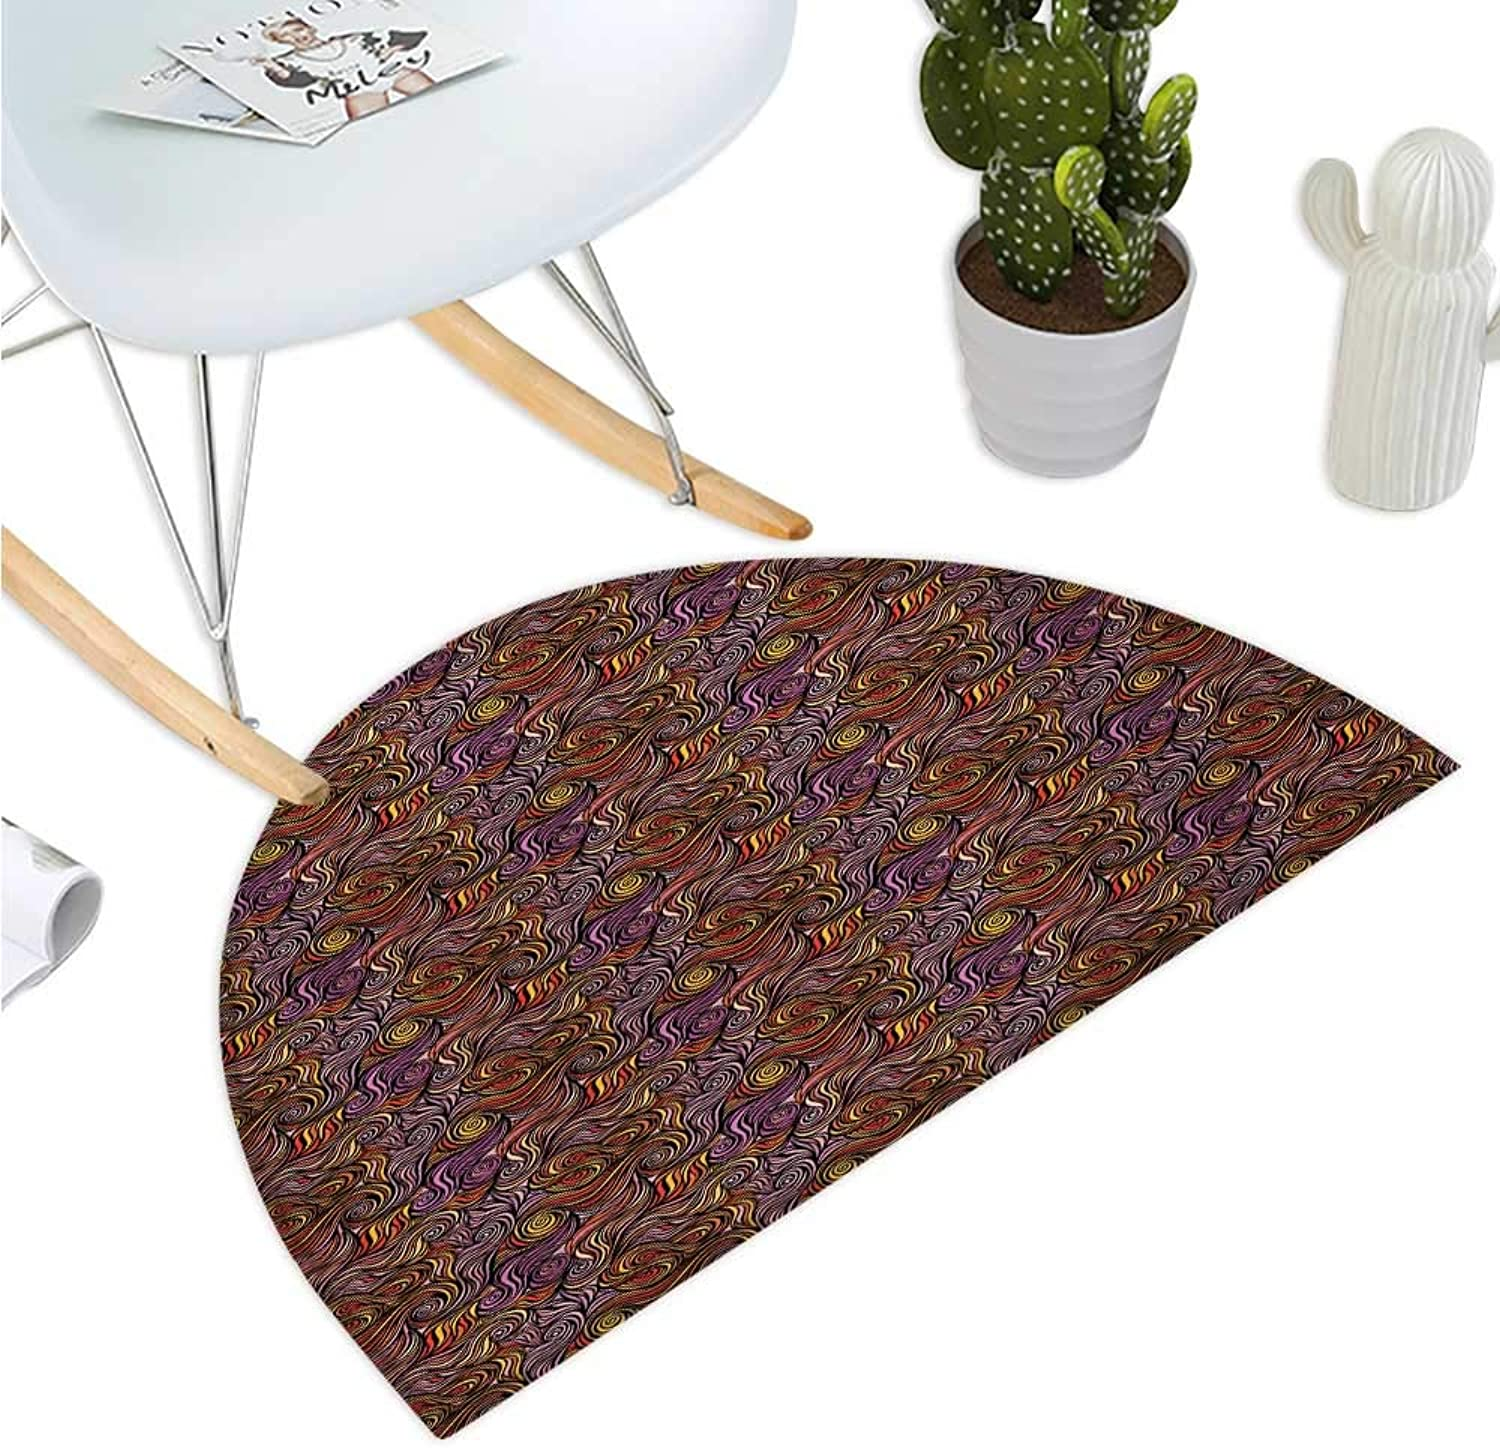 Abstract Semicircle Doormat Smoothly Engaging colors Hand Drawing Style Wave Design with Spirals and Swirls Entry Door Mat H 39.3  xD 59  Multicolor